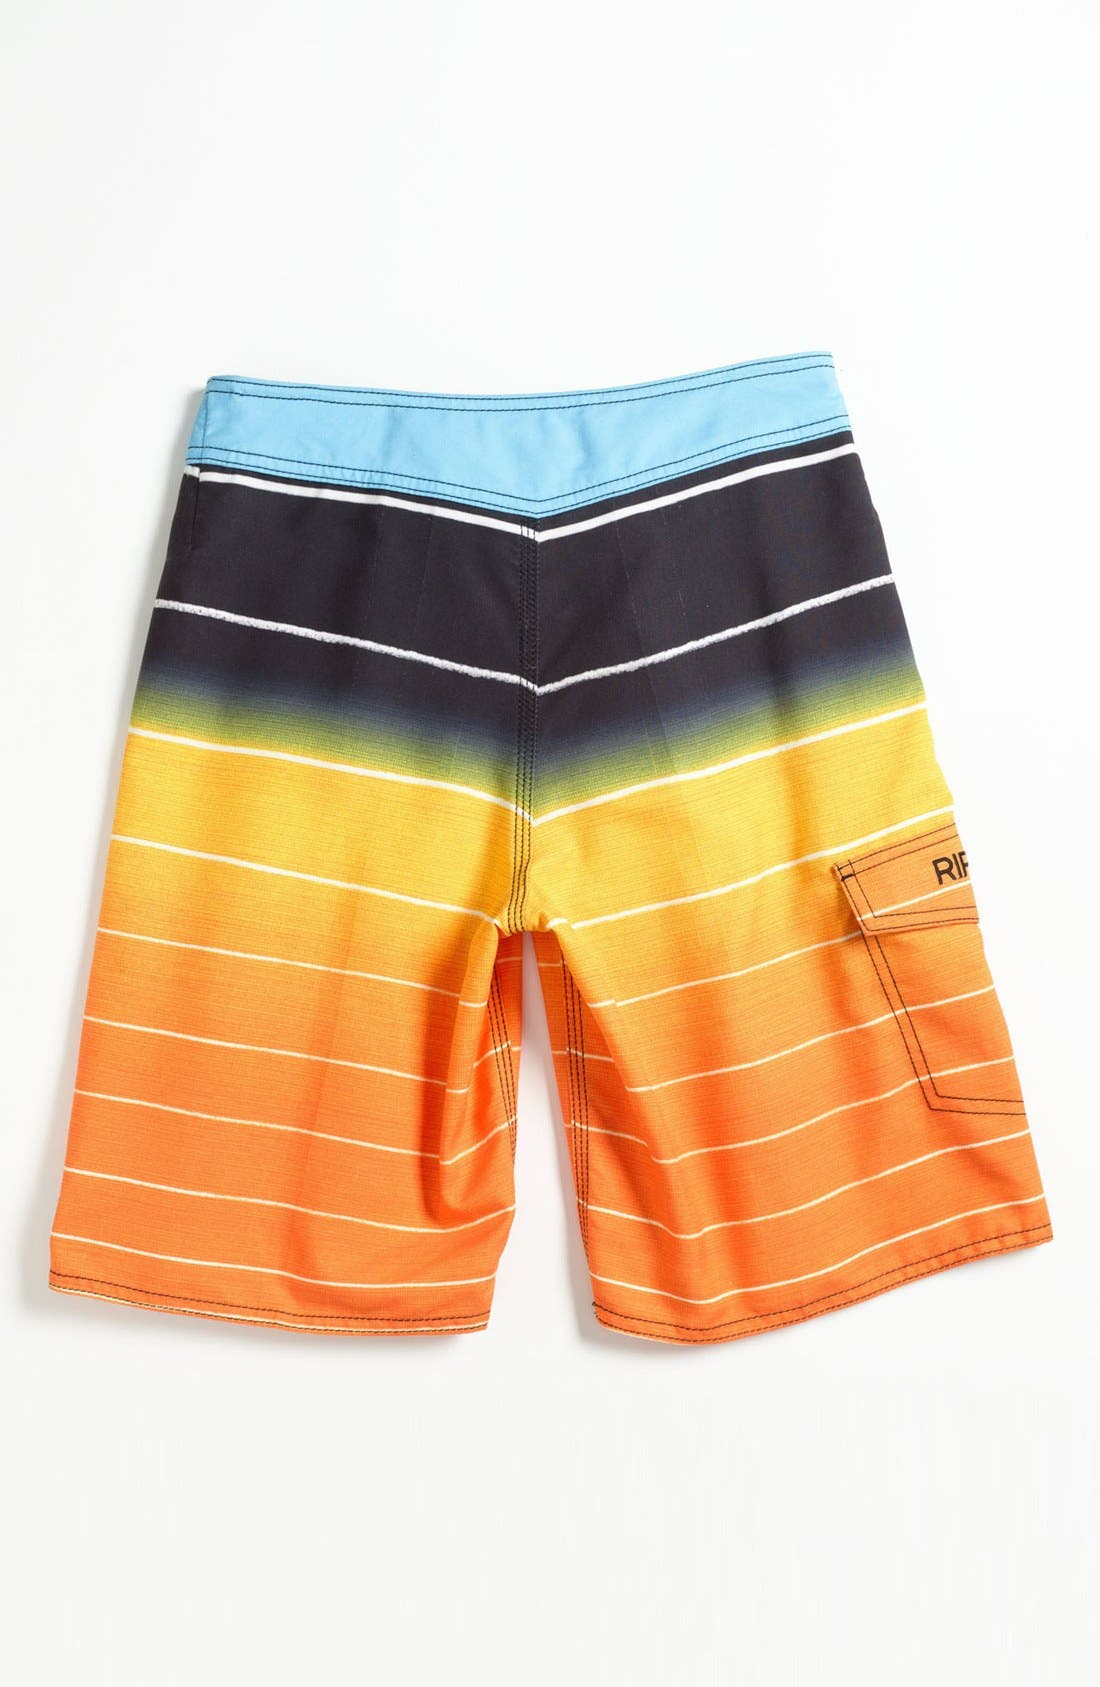 Alternate Image 2  - Rip Curl 'Aggrosection' Board Shorts (Big Boys)